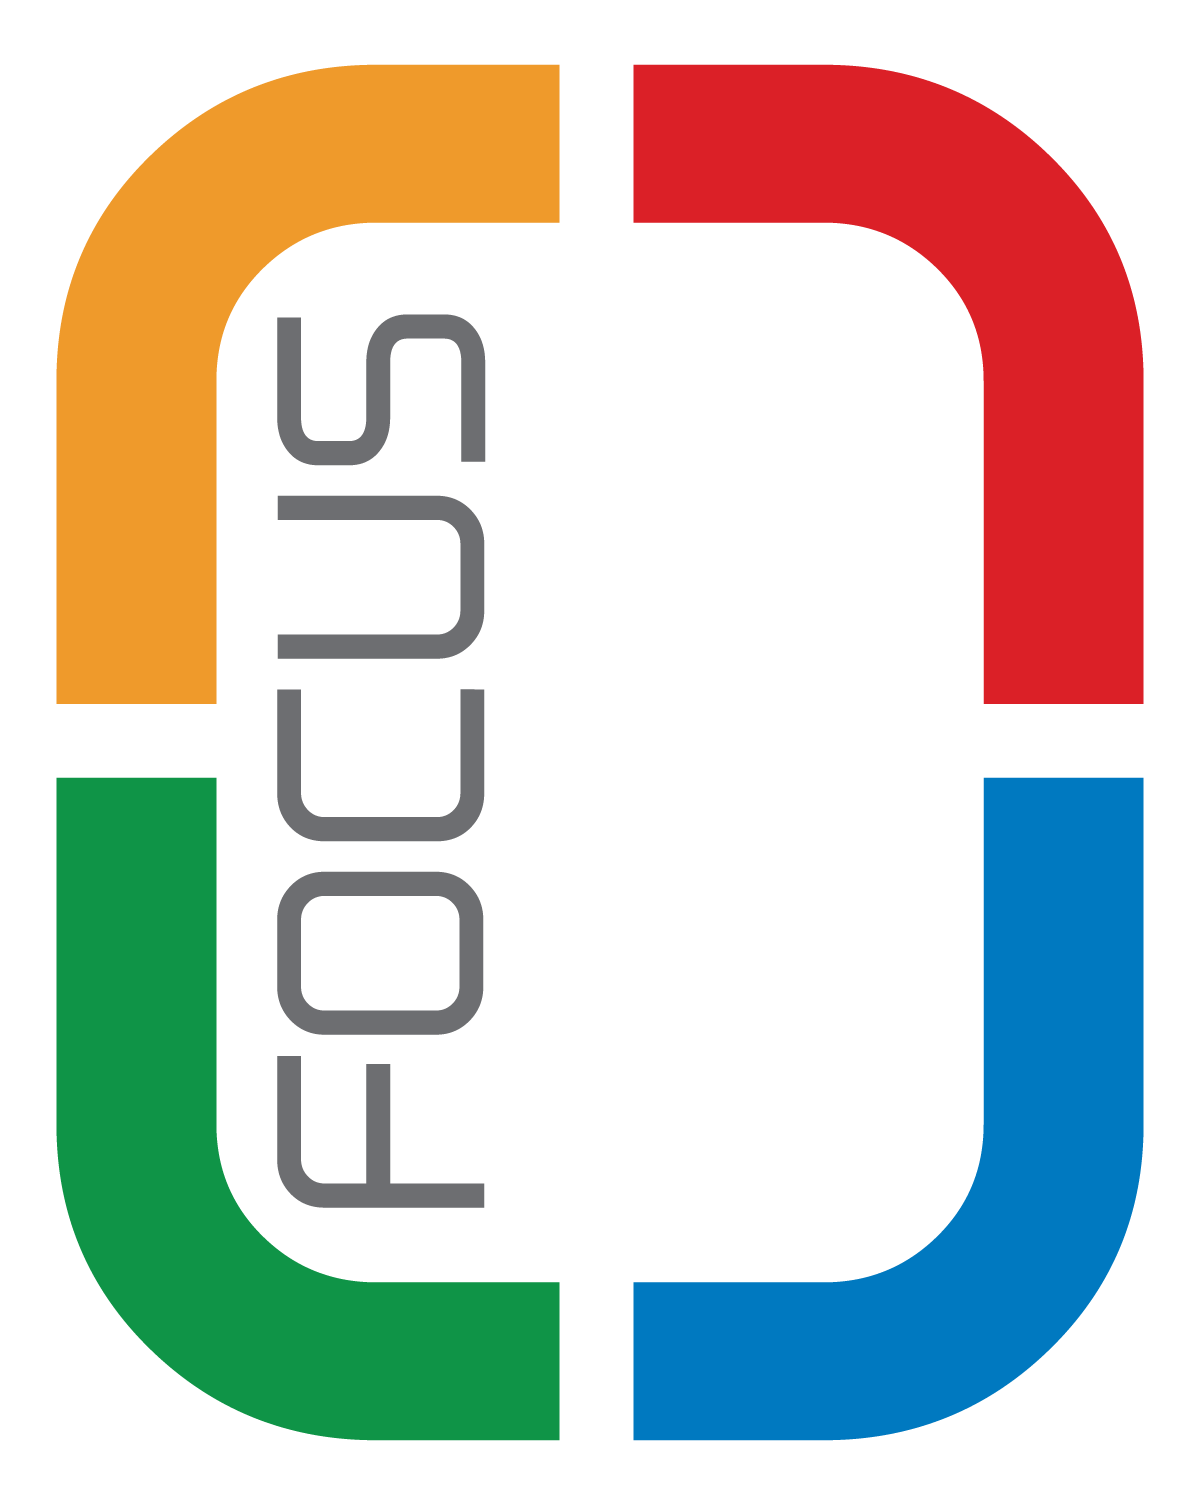 Focus Services Appoints Ben Joe Markland as Chief Operations Officer